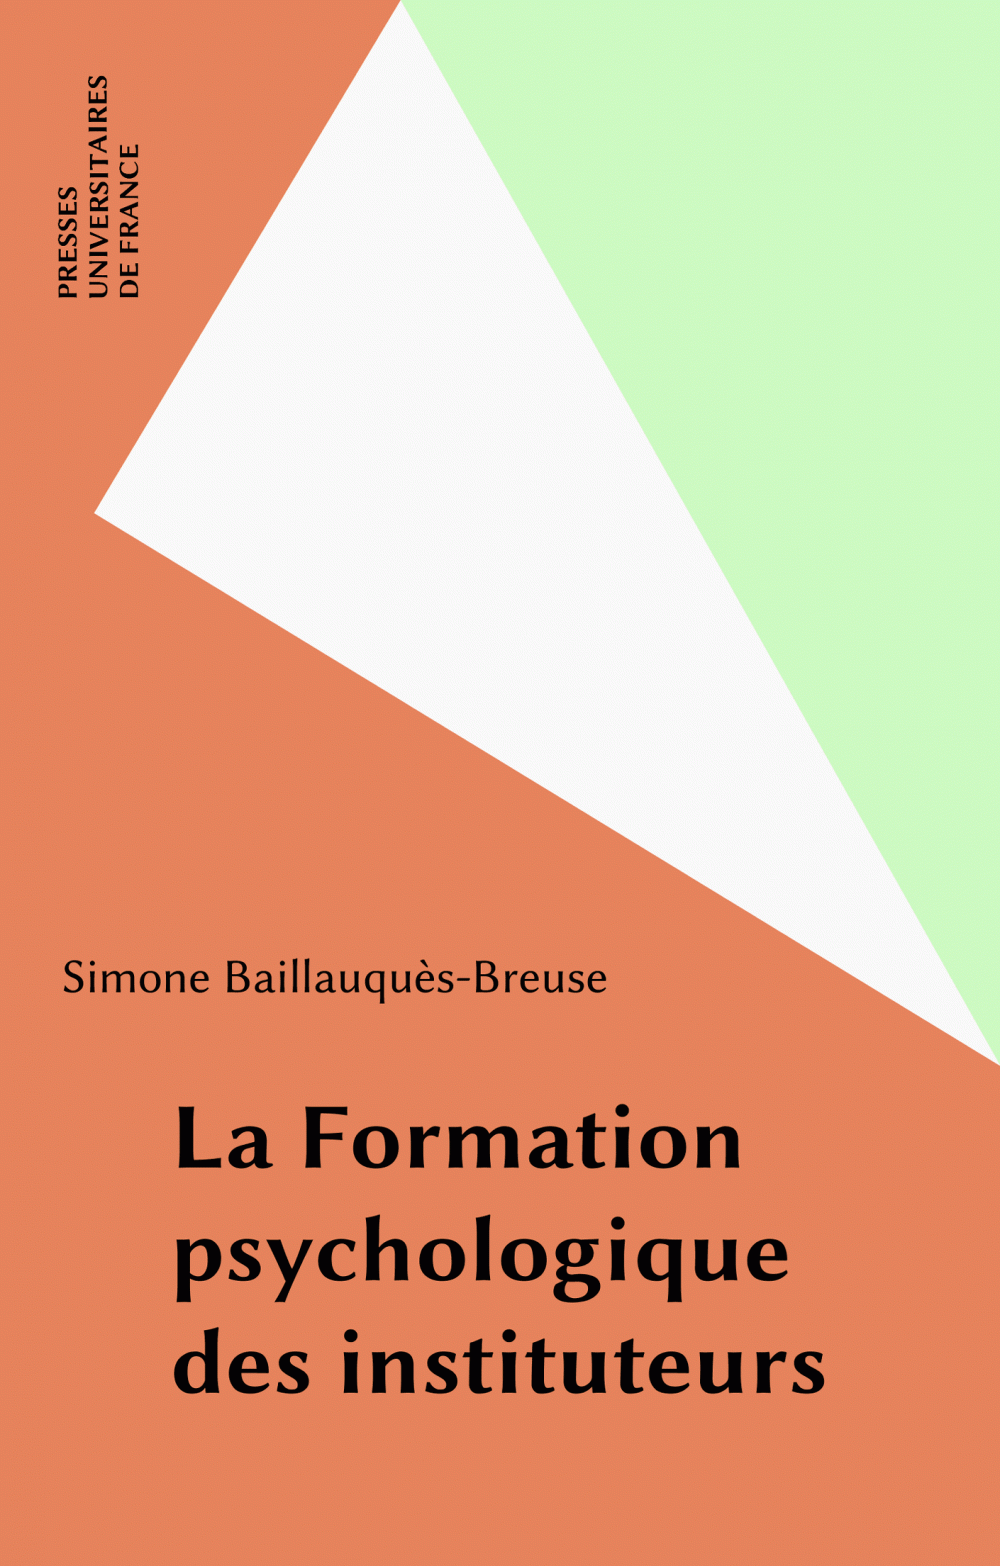 La Formation psychologique des instituteurs